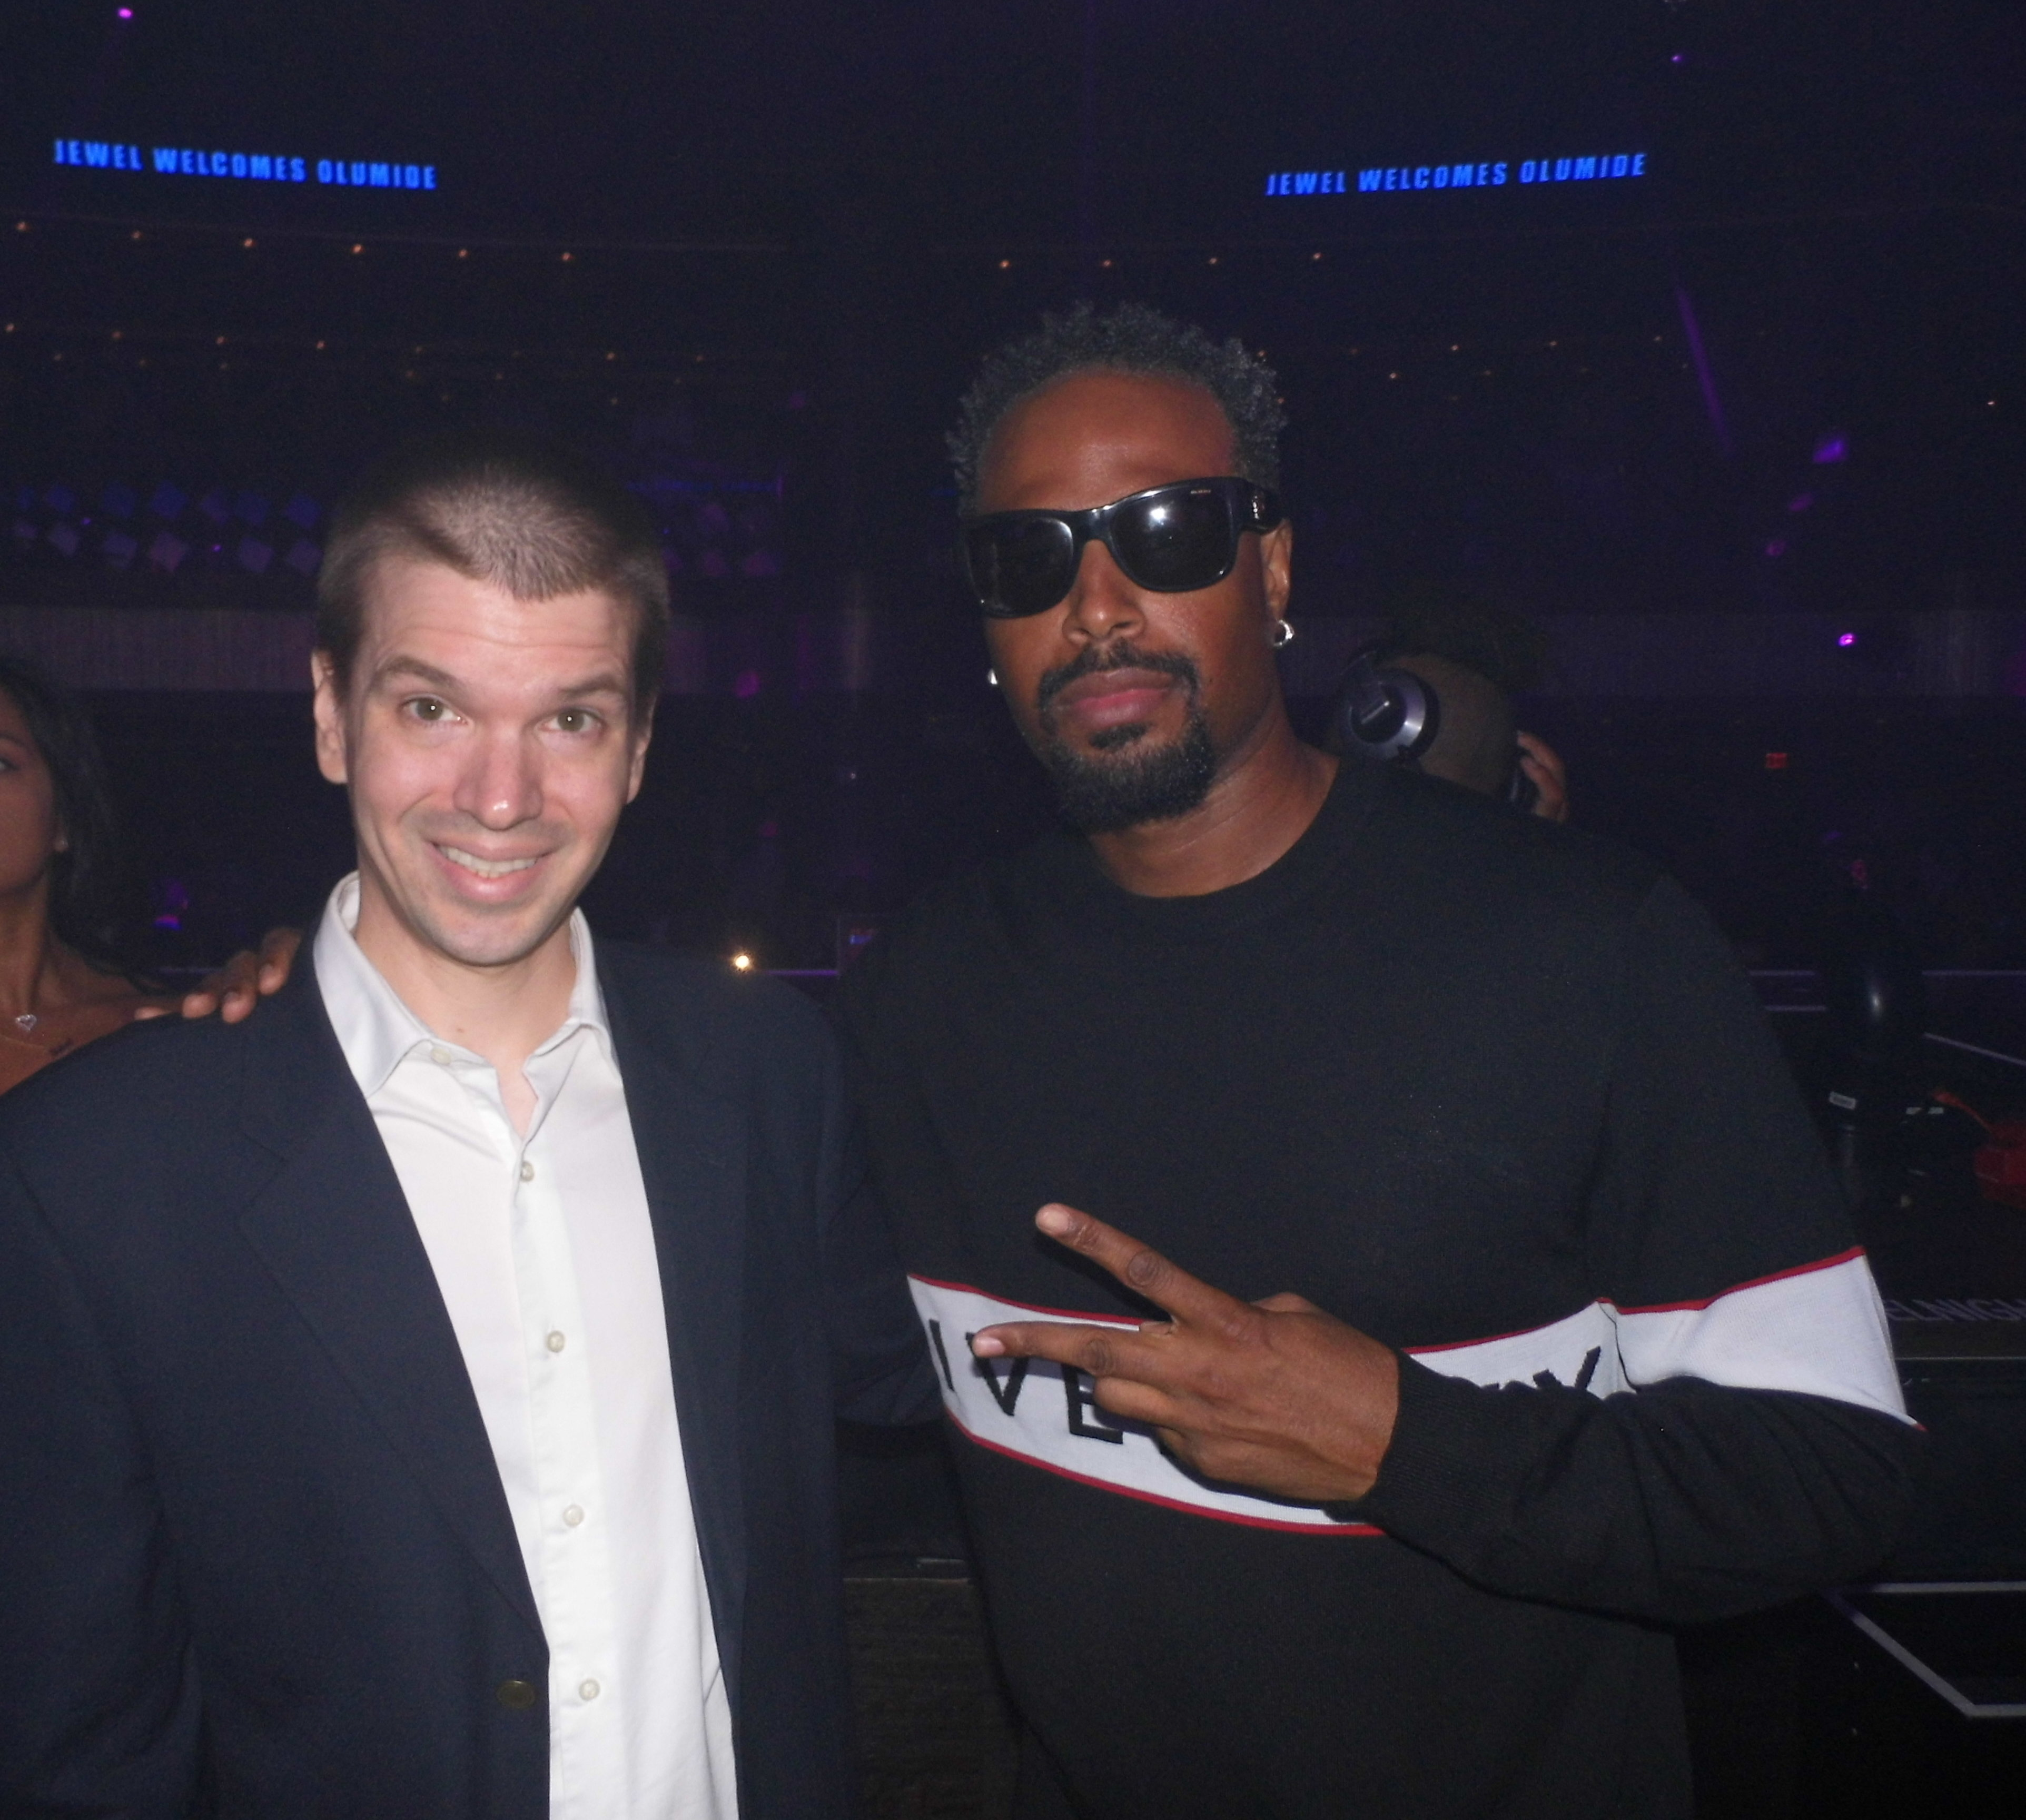 DJs Las Vegas 2018, DJ Shawn Wayans, Chris Yandek, Shawn Wayans, Chris Yandek Shawn Wayans, Las Vegas 2018, Las Vegas Nightlife 2018, Jewel Nightclub Shawn Wayans, Jewel Nightclub Las Vegas 2018, Las Vegas Entertainment Scene 2018